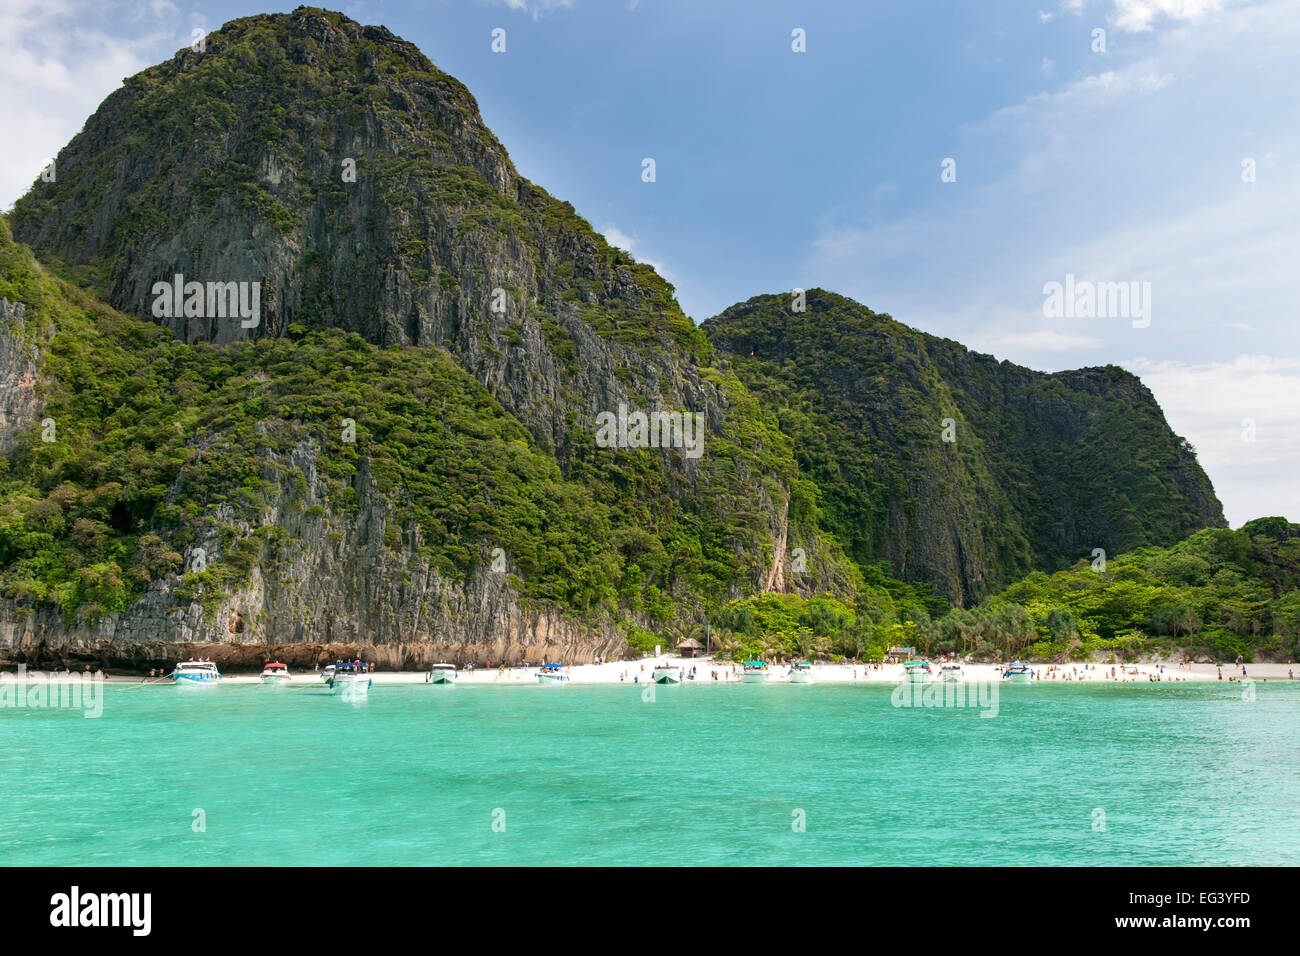 Maya Bay beach and tourists, Koh Phi Phi Ley island, Thailand. - Stock Image